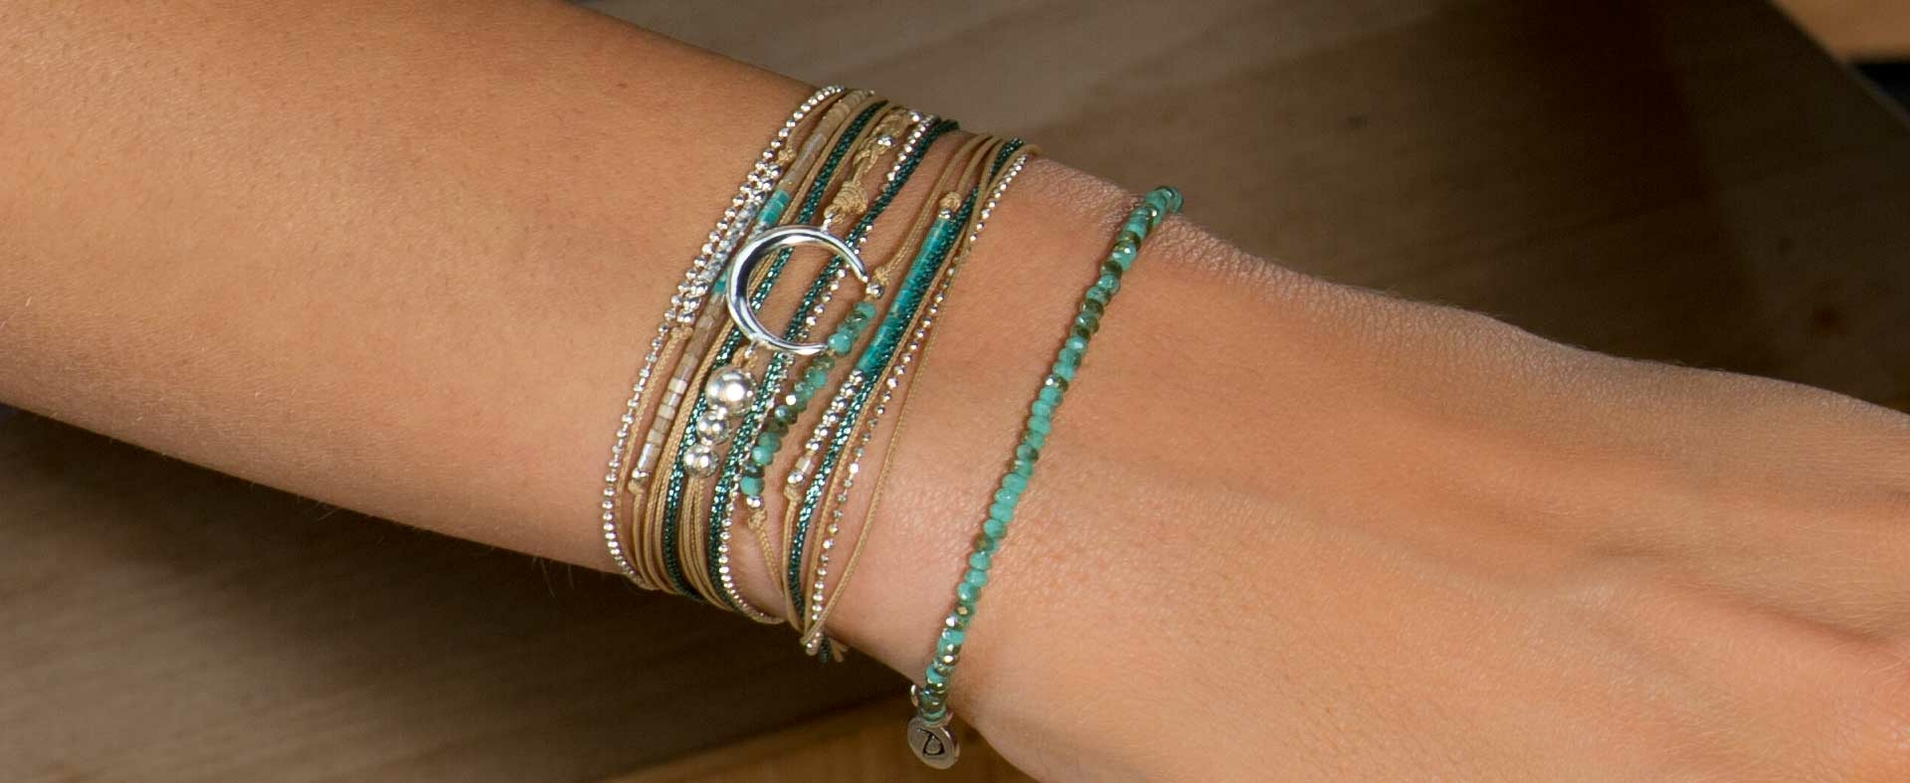 Bandeau-Categorie-Bracelets-Multi-tours